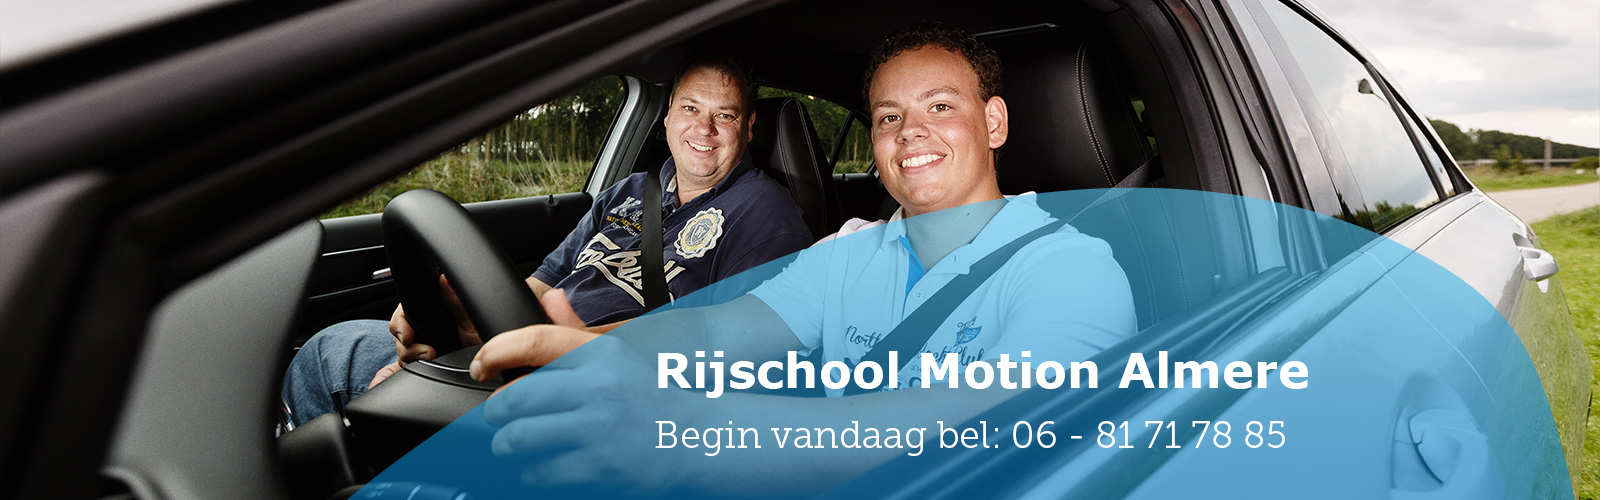 Contact Rijschool Motion Almere